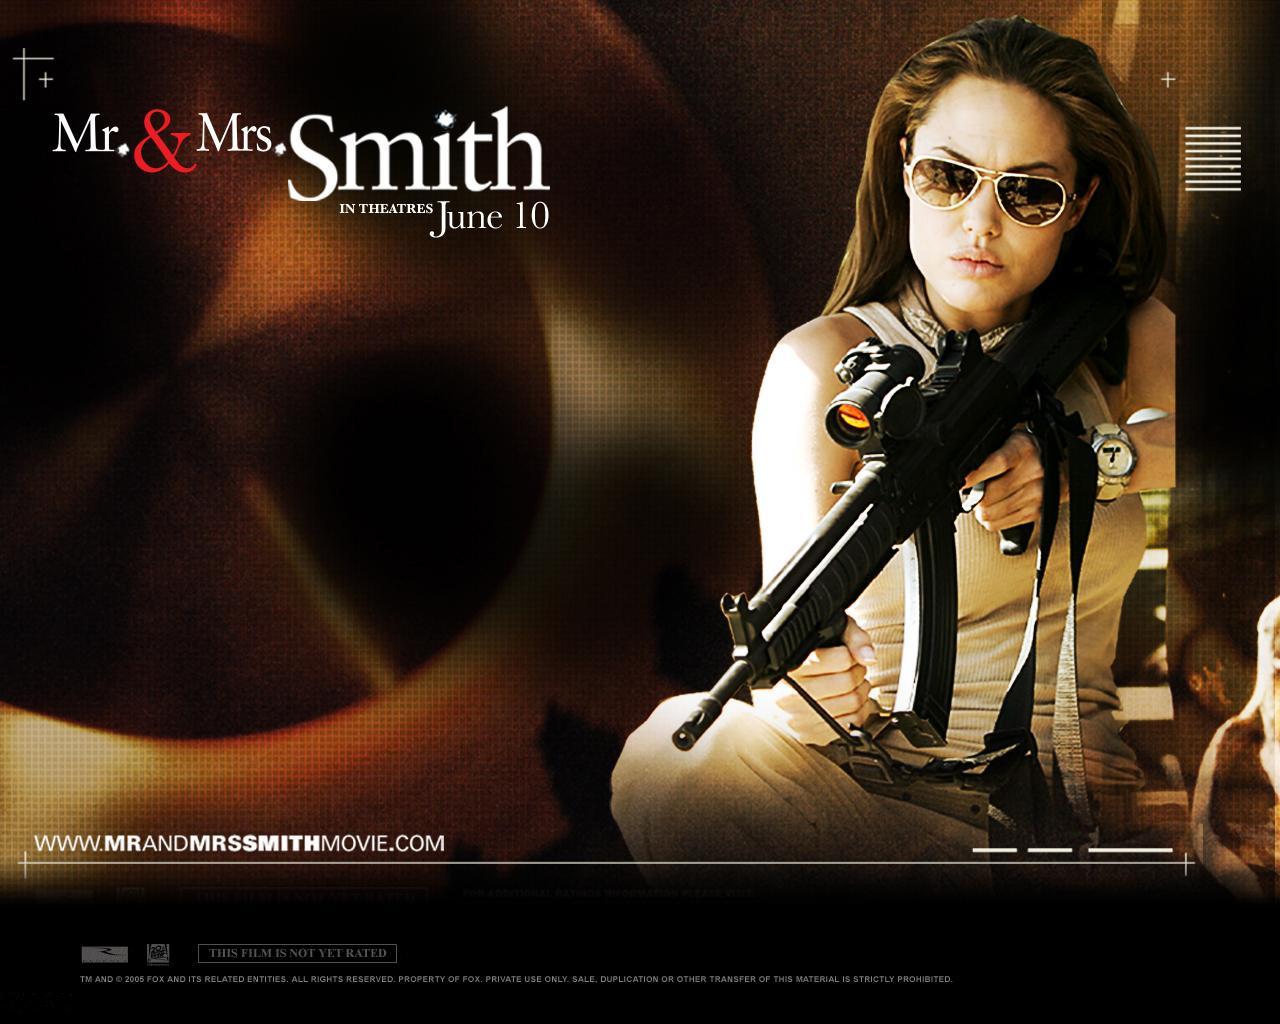 mrs smith View the profiles of professionals named mrs smith on linkedin there are 100+ professionals named mrs smith, who use linkedin to exchange information, ideas, and opportunities.